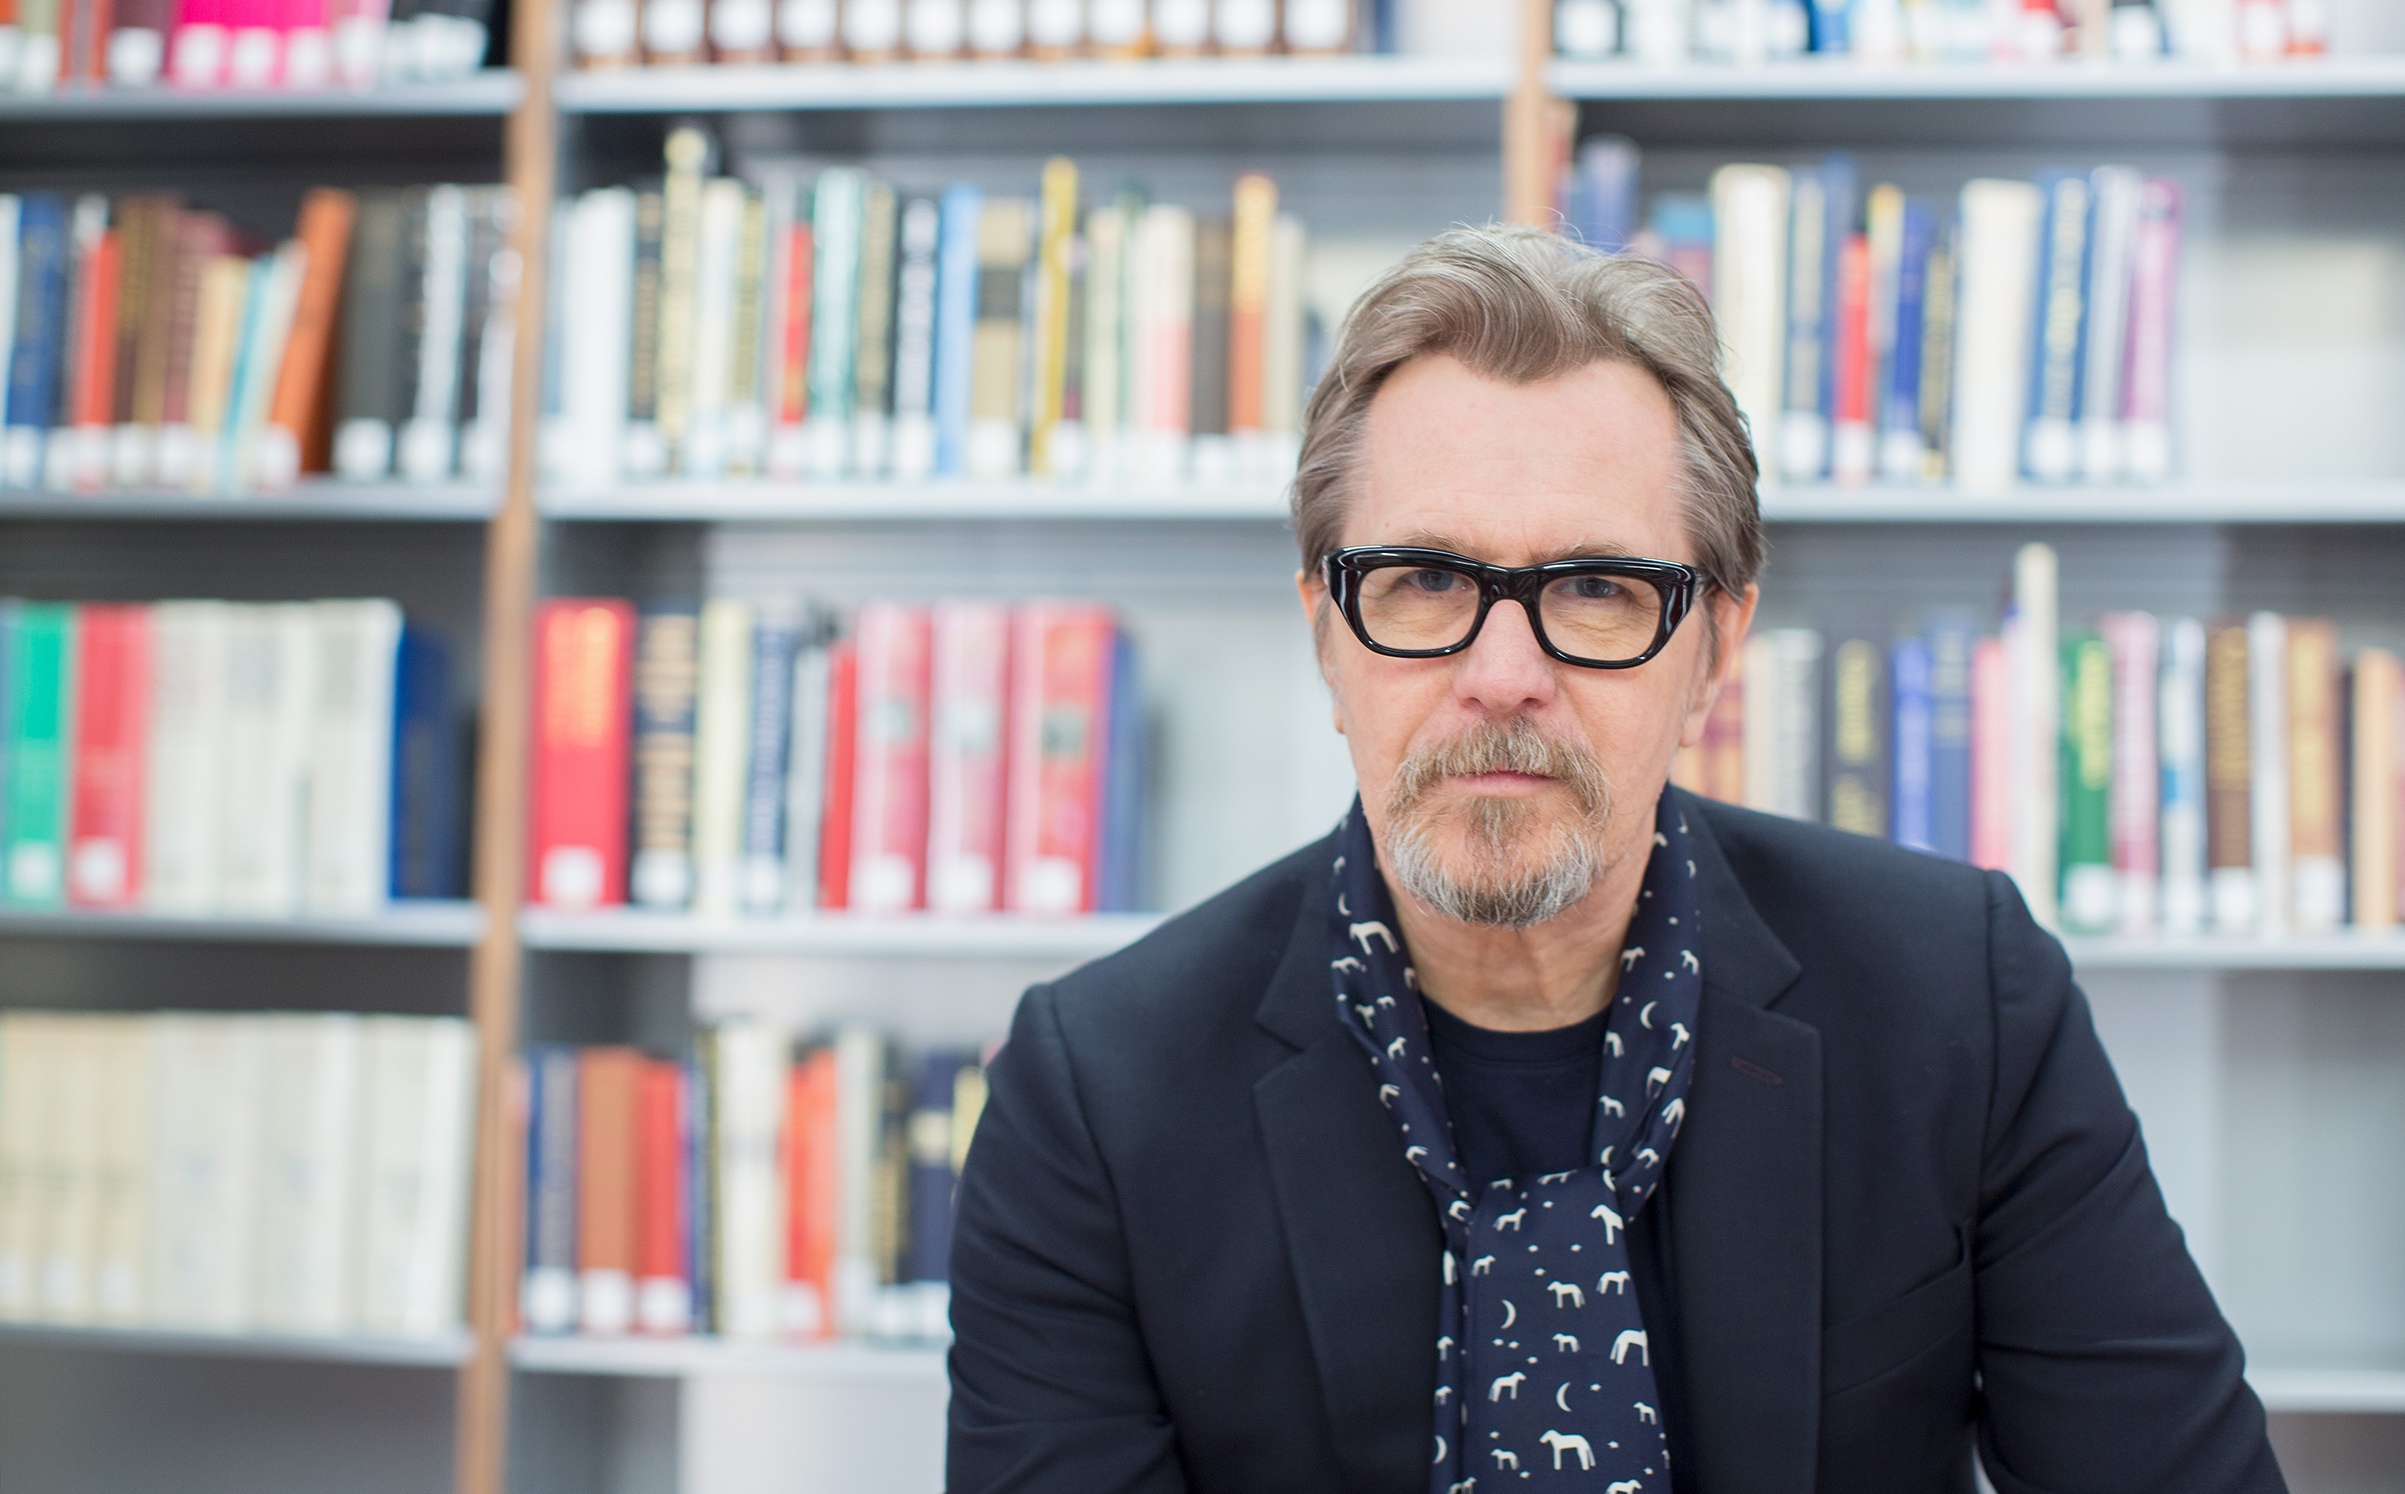 Actor Gary Oldman at Churchill Library Meet and Greet - Darkest Hour Tour at National Churchill Library and Center on November 3, 2017 in Washington, DC.